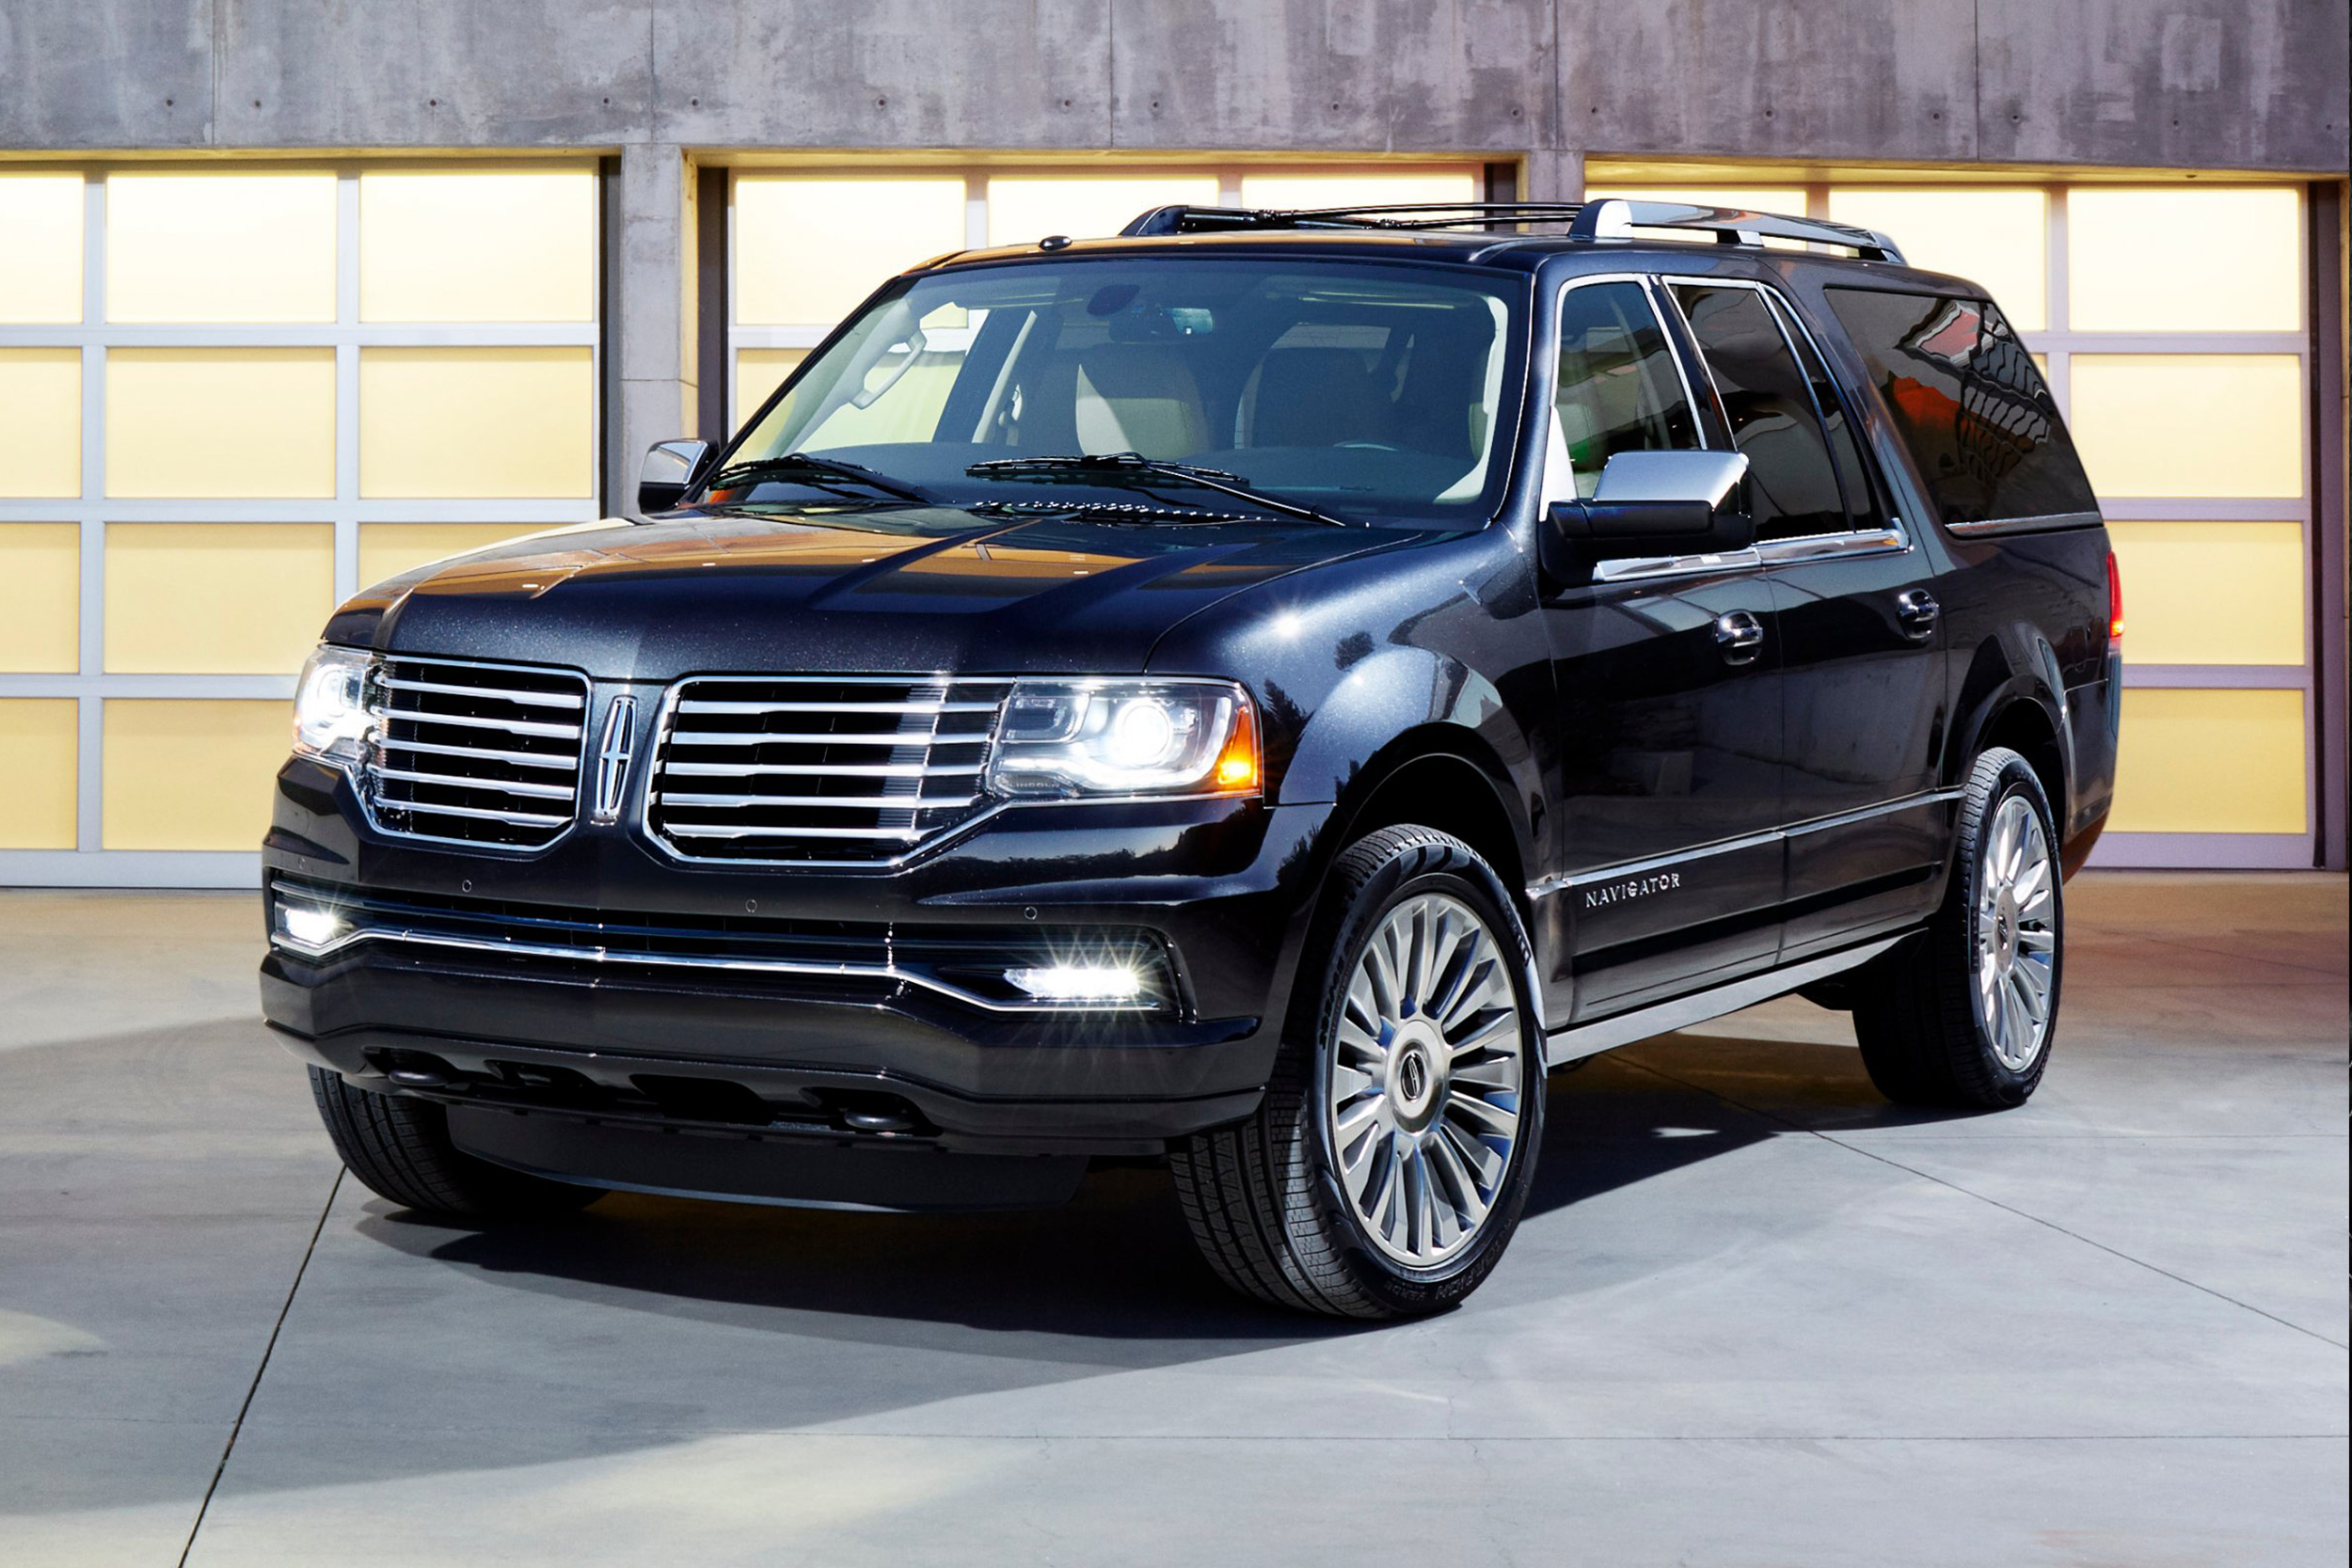 Luxury suv - Our luxury SUVs provide high-level comfort and class for both corporate and recreational travel.FEATURES: Premium Leather Seating, USB Outlets, Bluetooth Audio Sound System